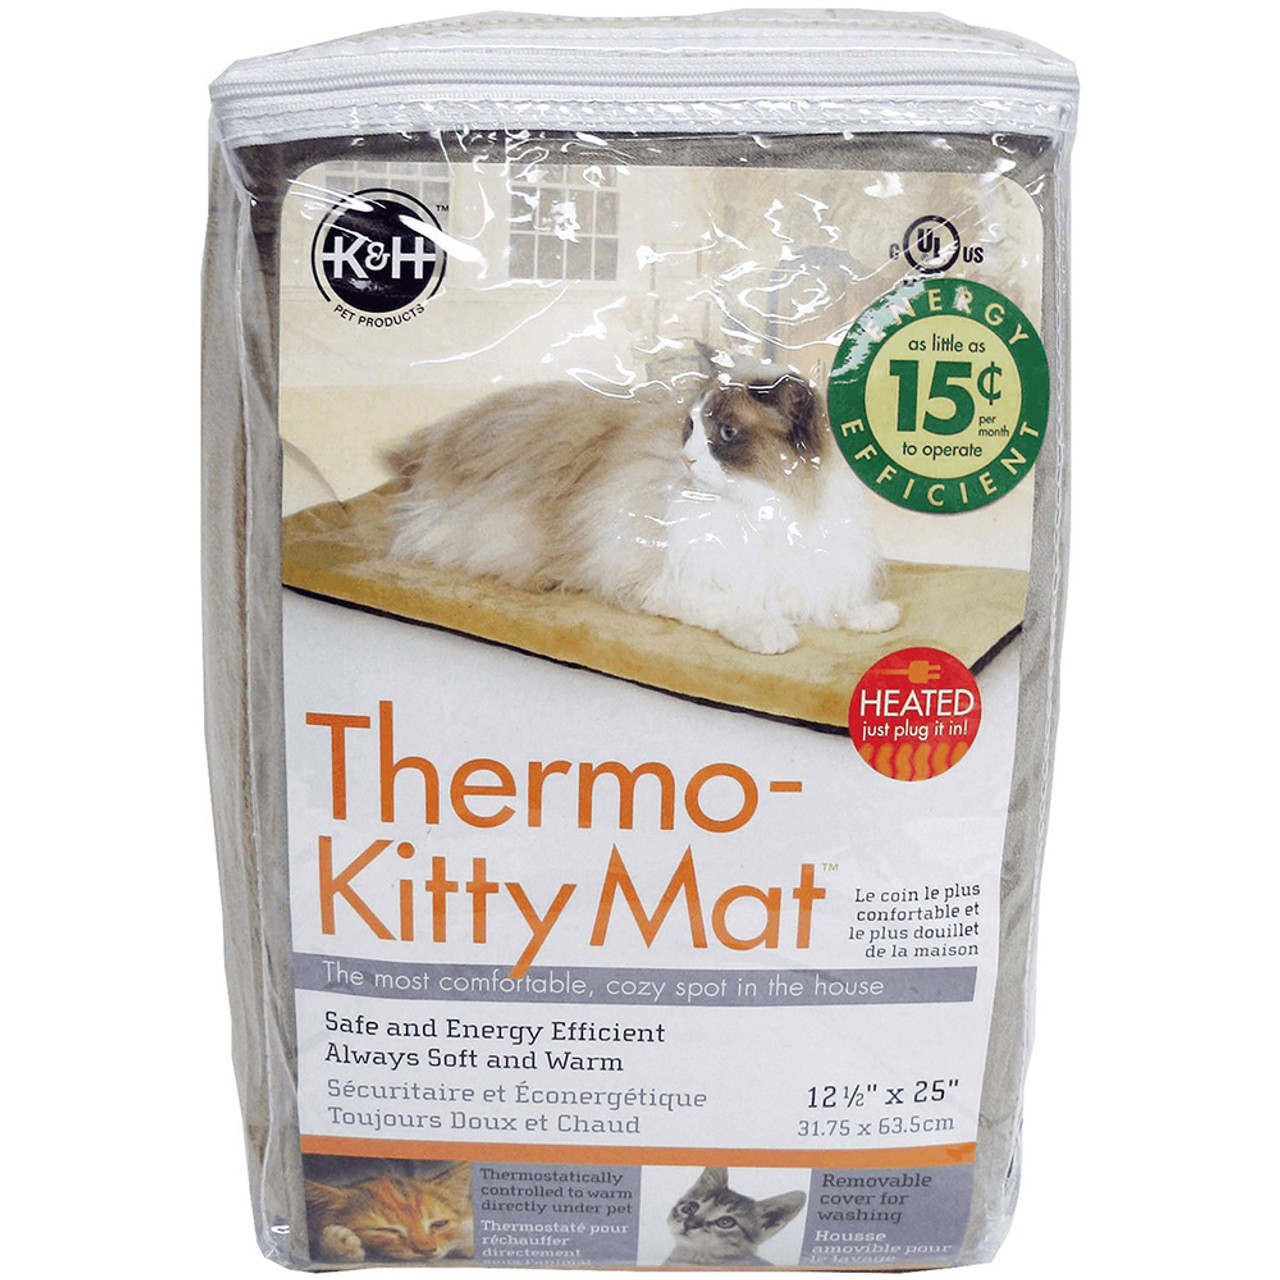 K&H Thermo-Kitty Mat Heated Cat Bed